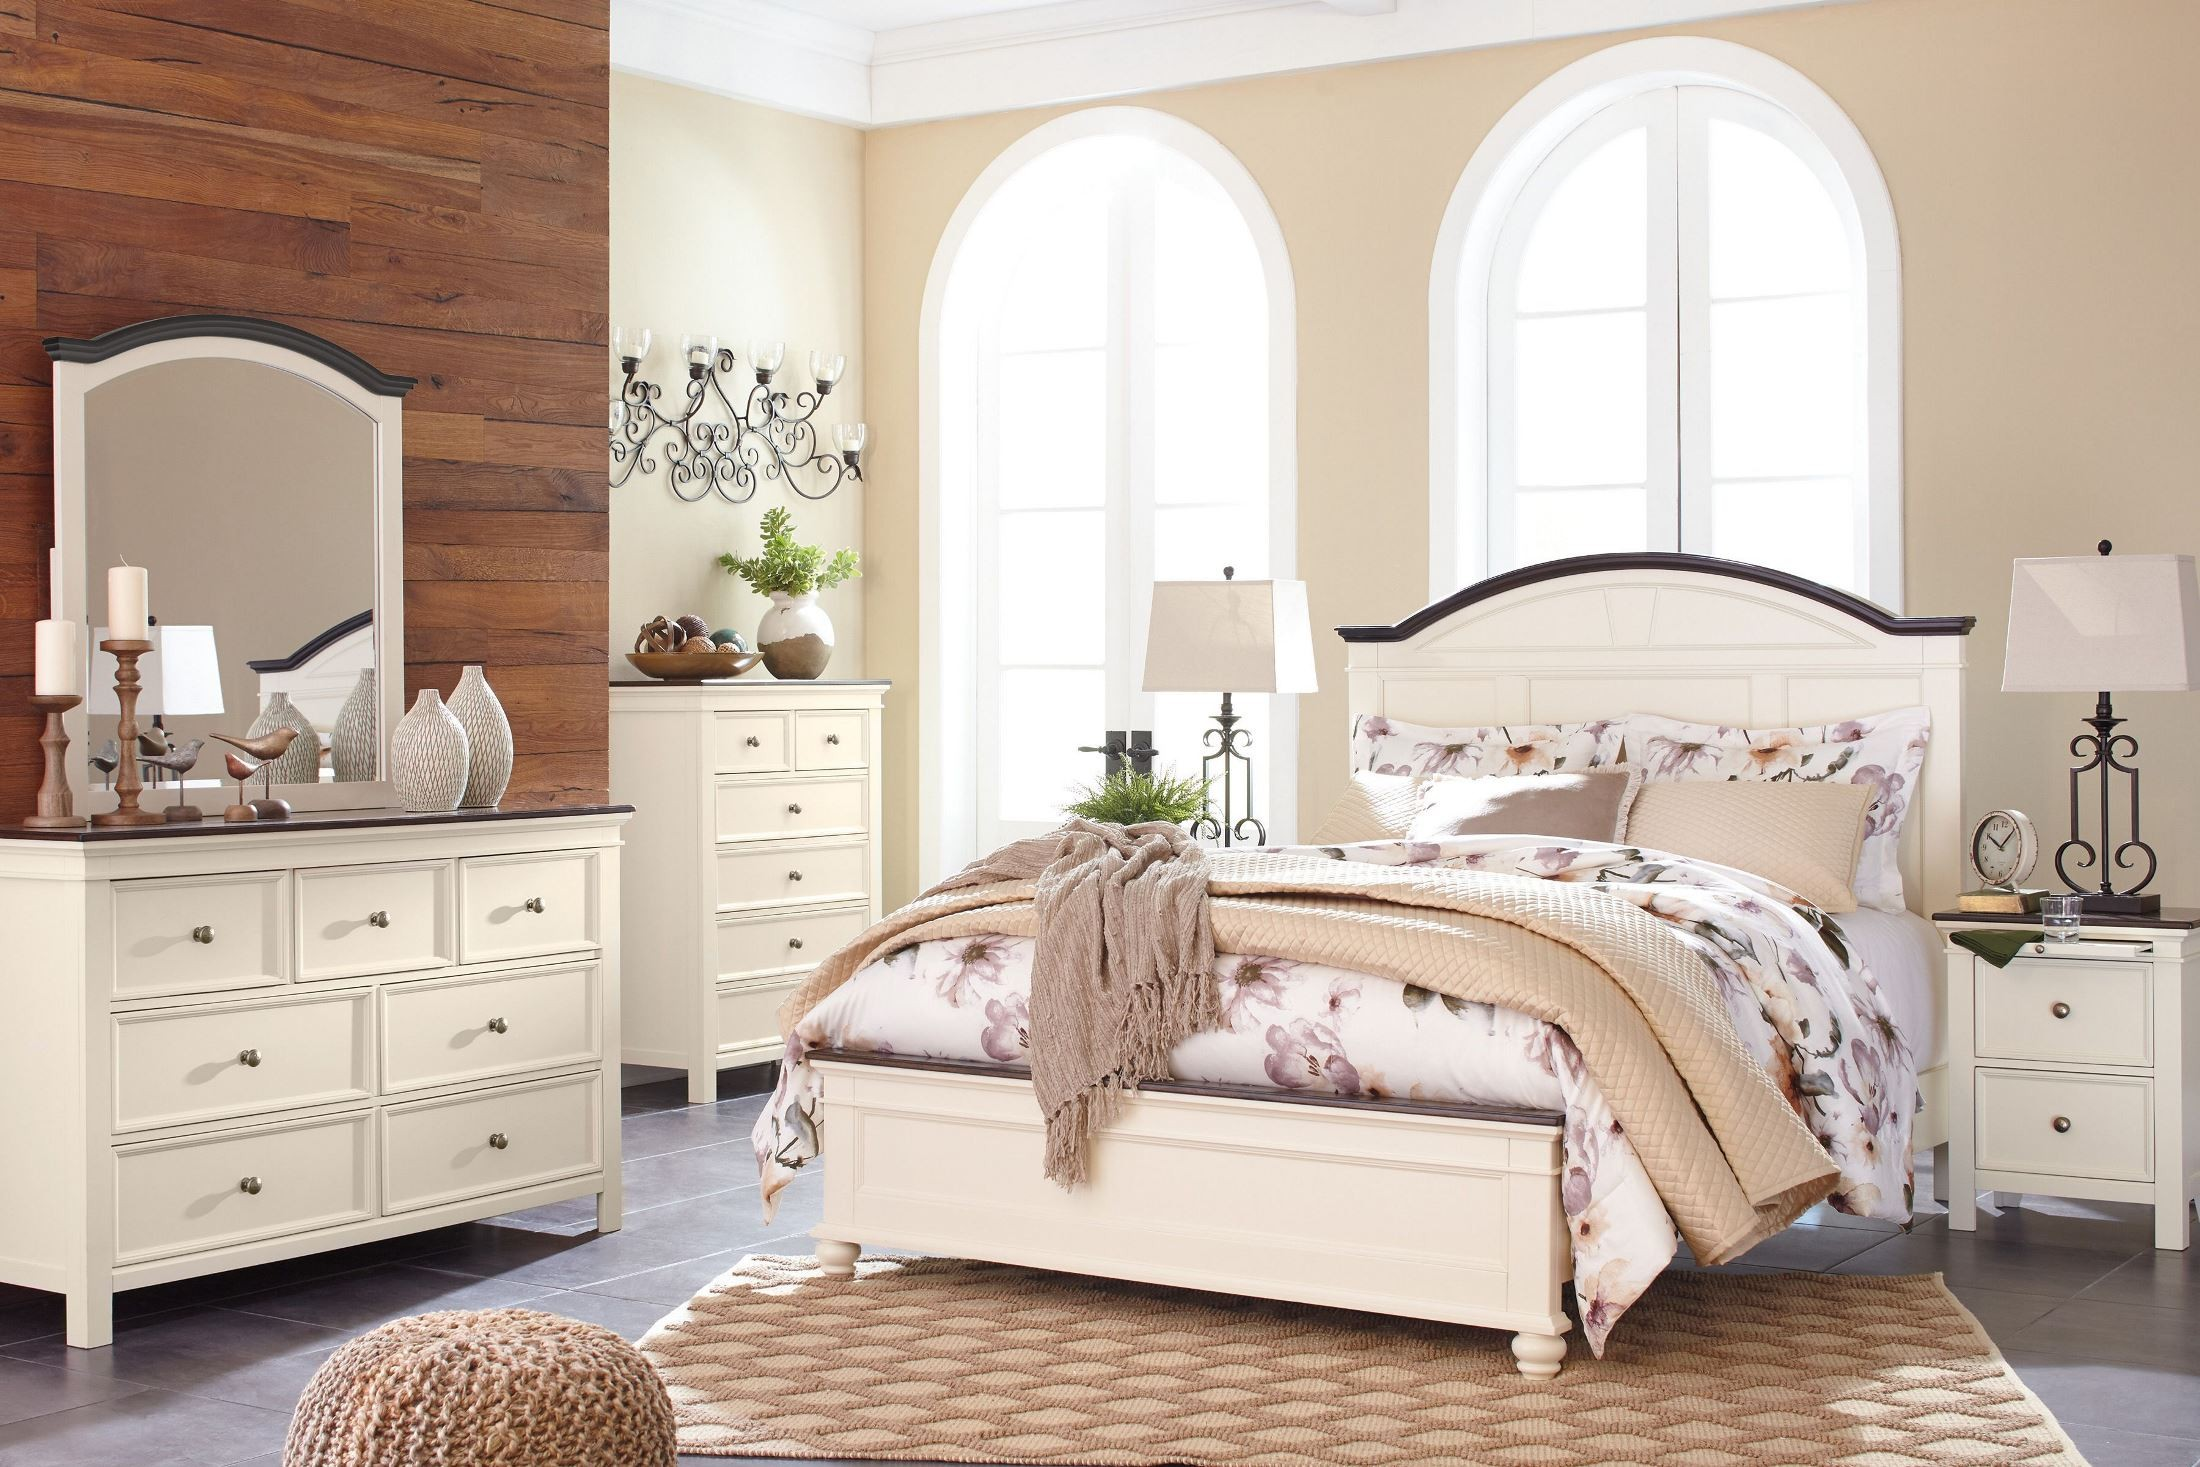 Woodanville White And Brown Panel Bedroom Set, B623-57-54-96, Ashley